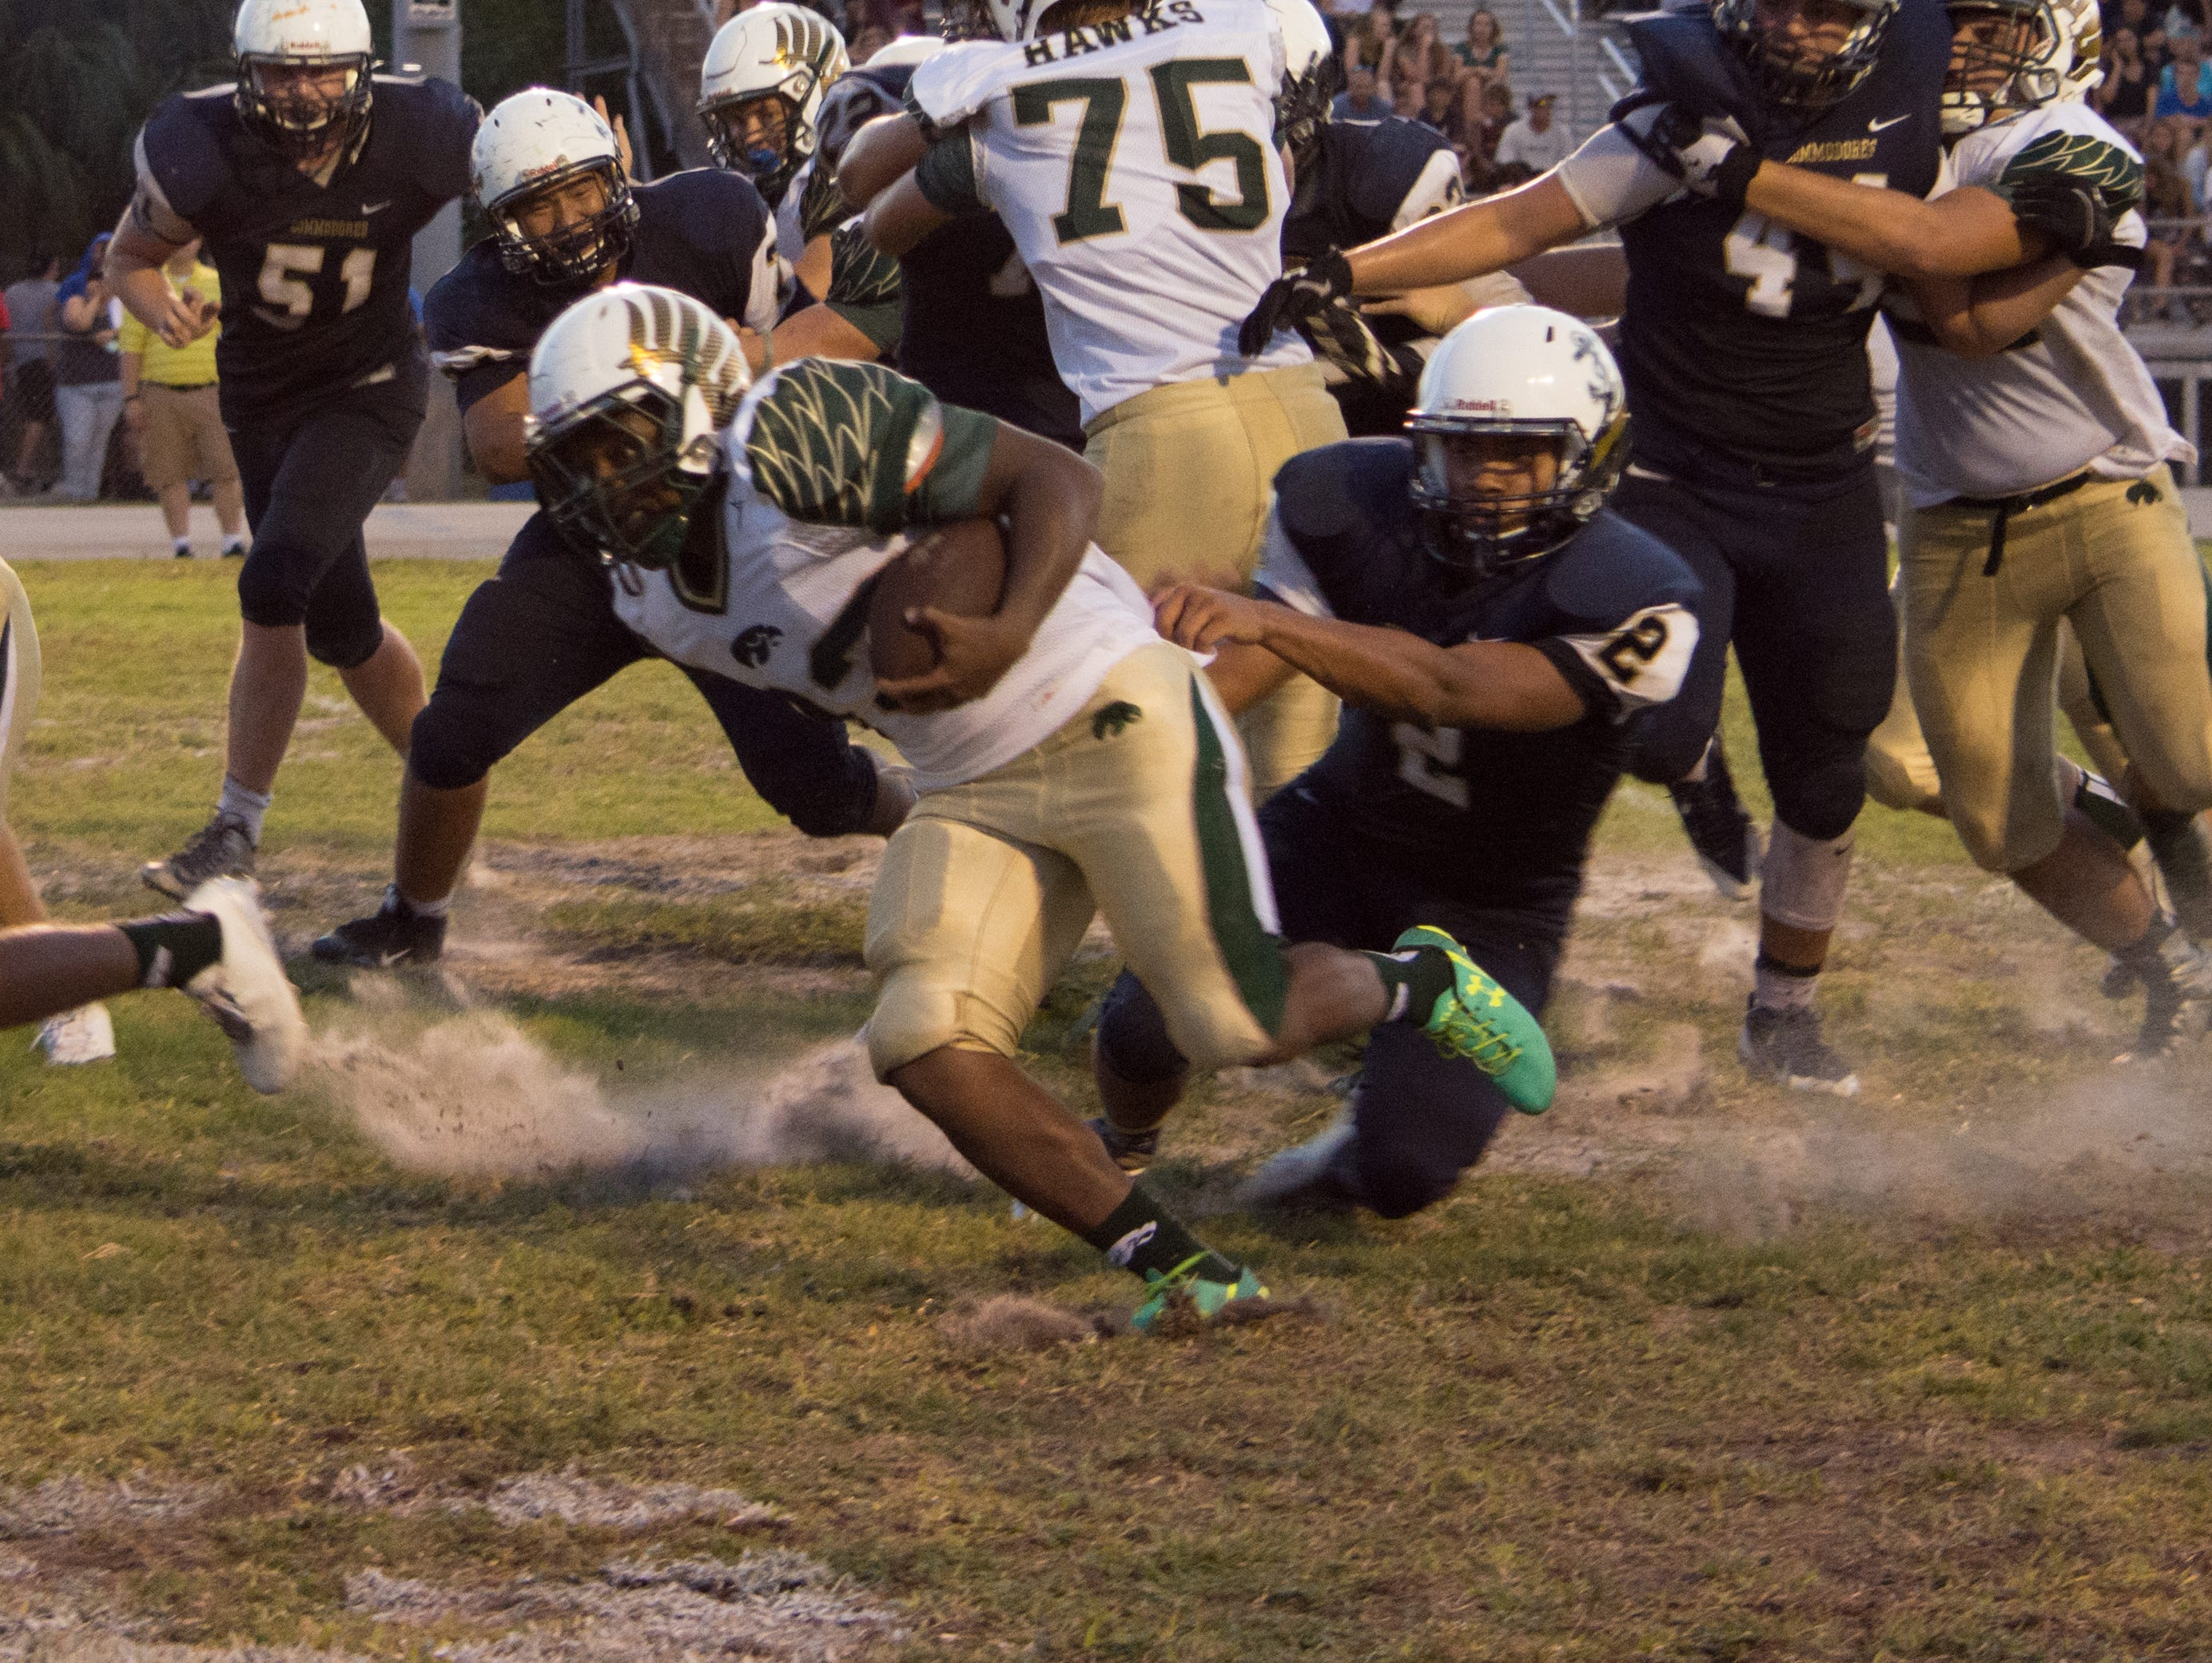 Viera High hosted Kathleen High on Friday night.